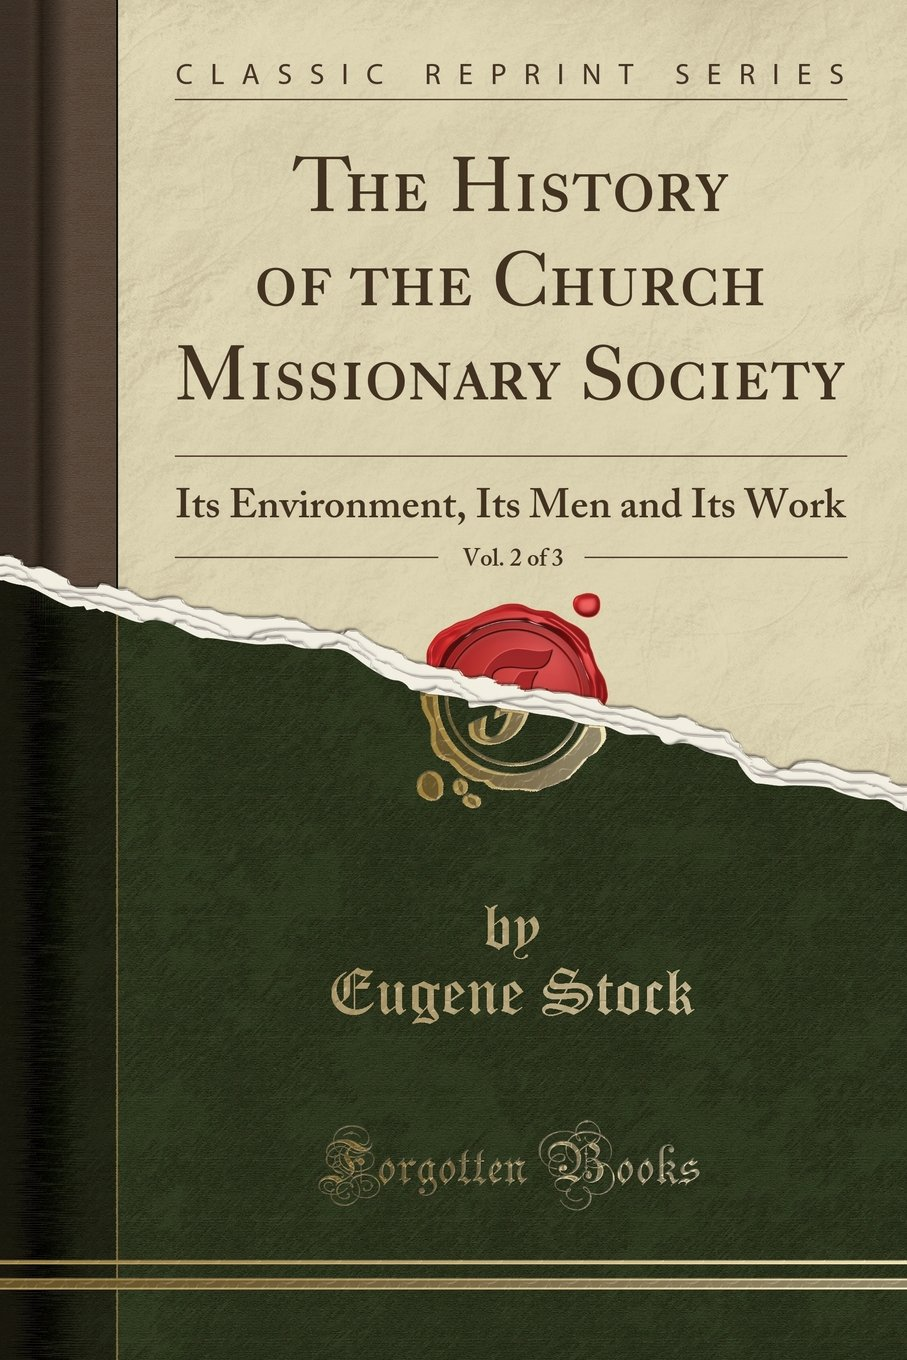 The History of the Church Missionary Society, Vol. 2 of 3: Its Environment, Its Men and Its Work (Classic Reprint) pdf epub